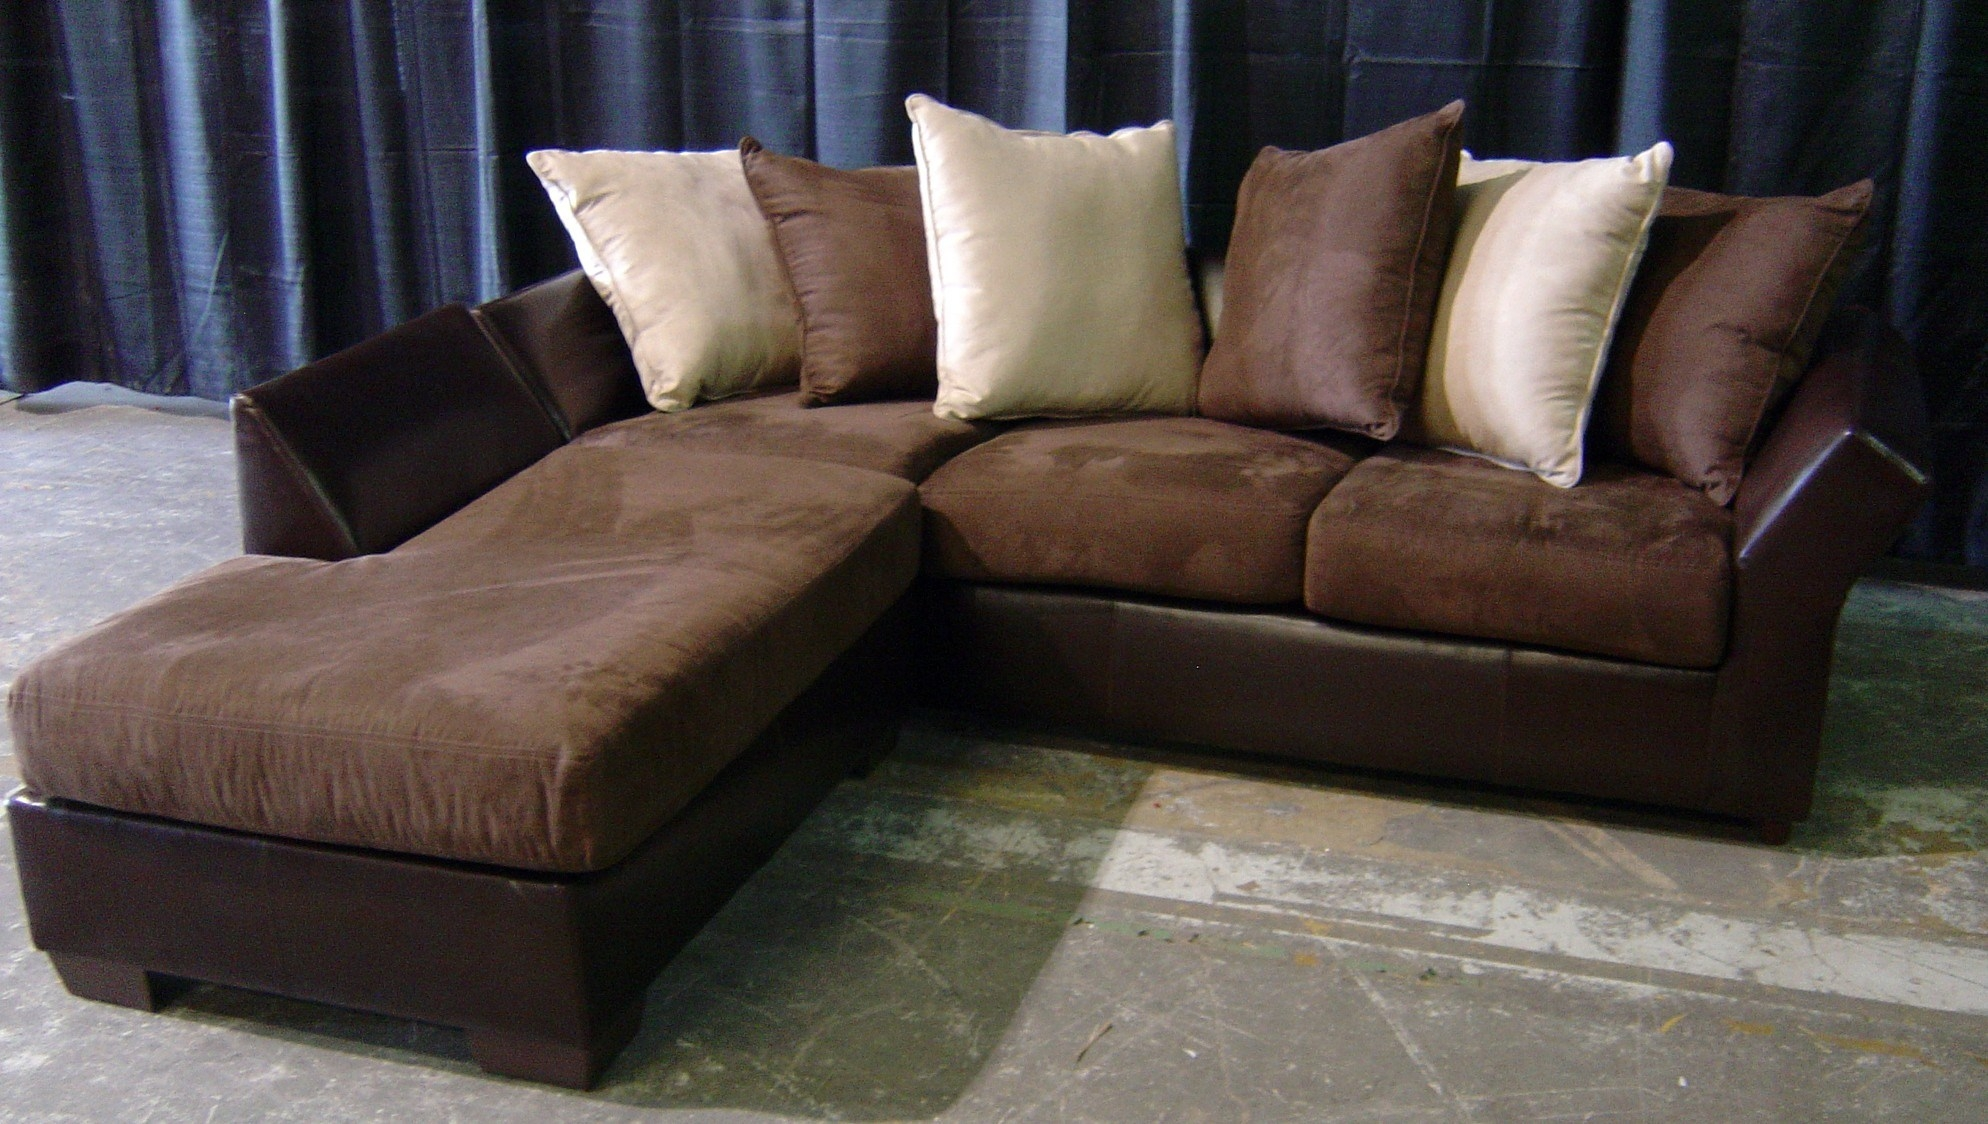 Furniture Brown Leather Sectional Couches Craigslist Missoula Pertaining To Craigslist Sectional Sofa (Image 11 of 15)